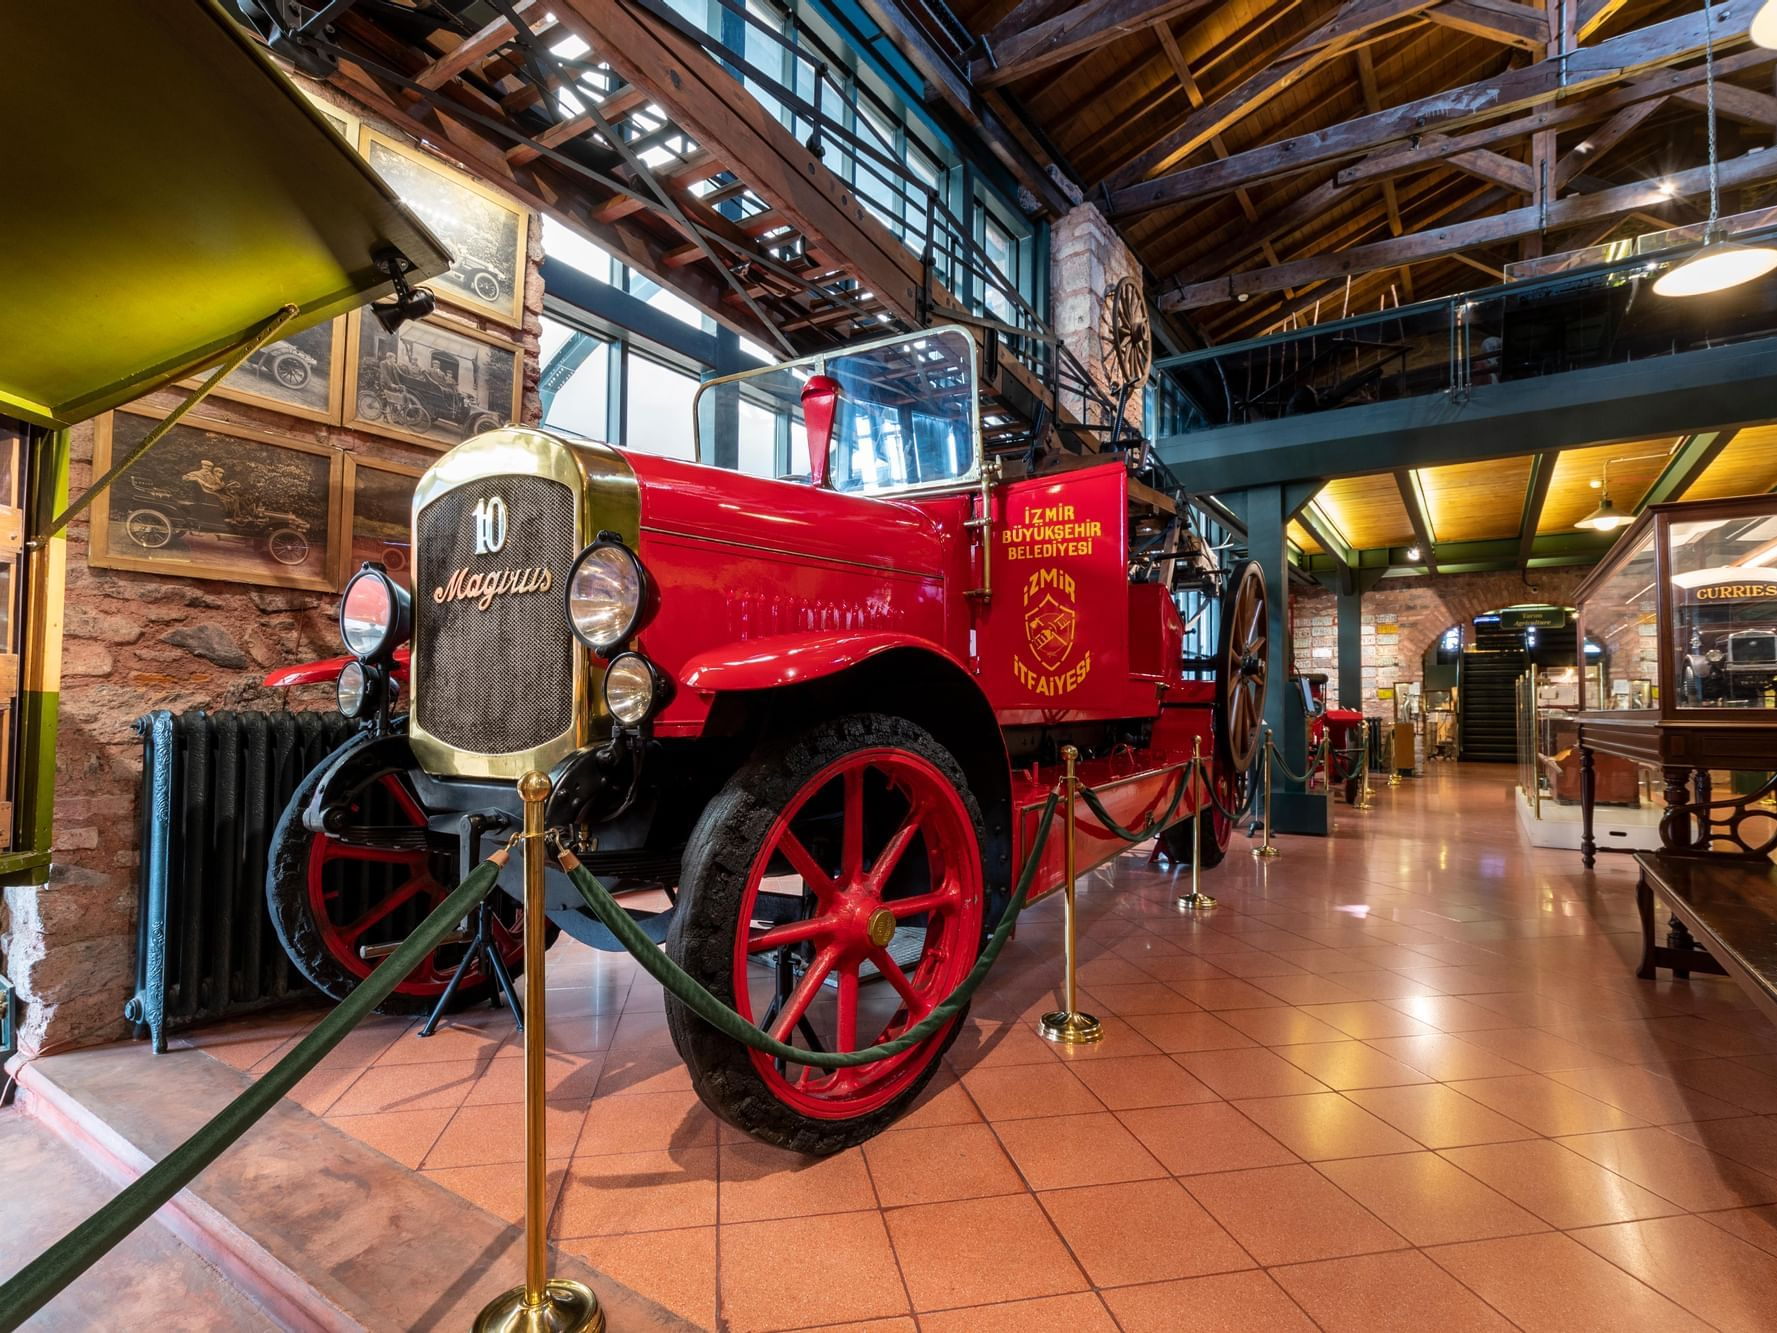 An ancient car in the Koc Museum near CVK Hotels